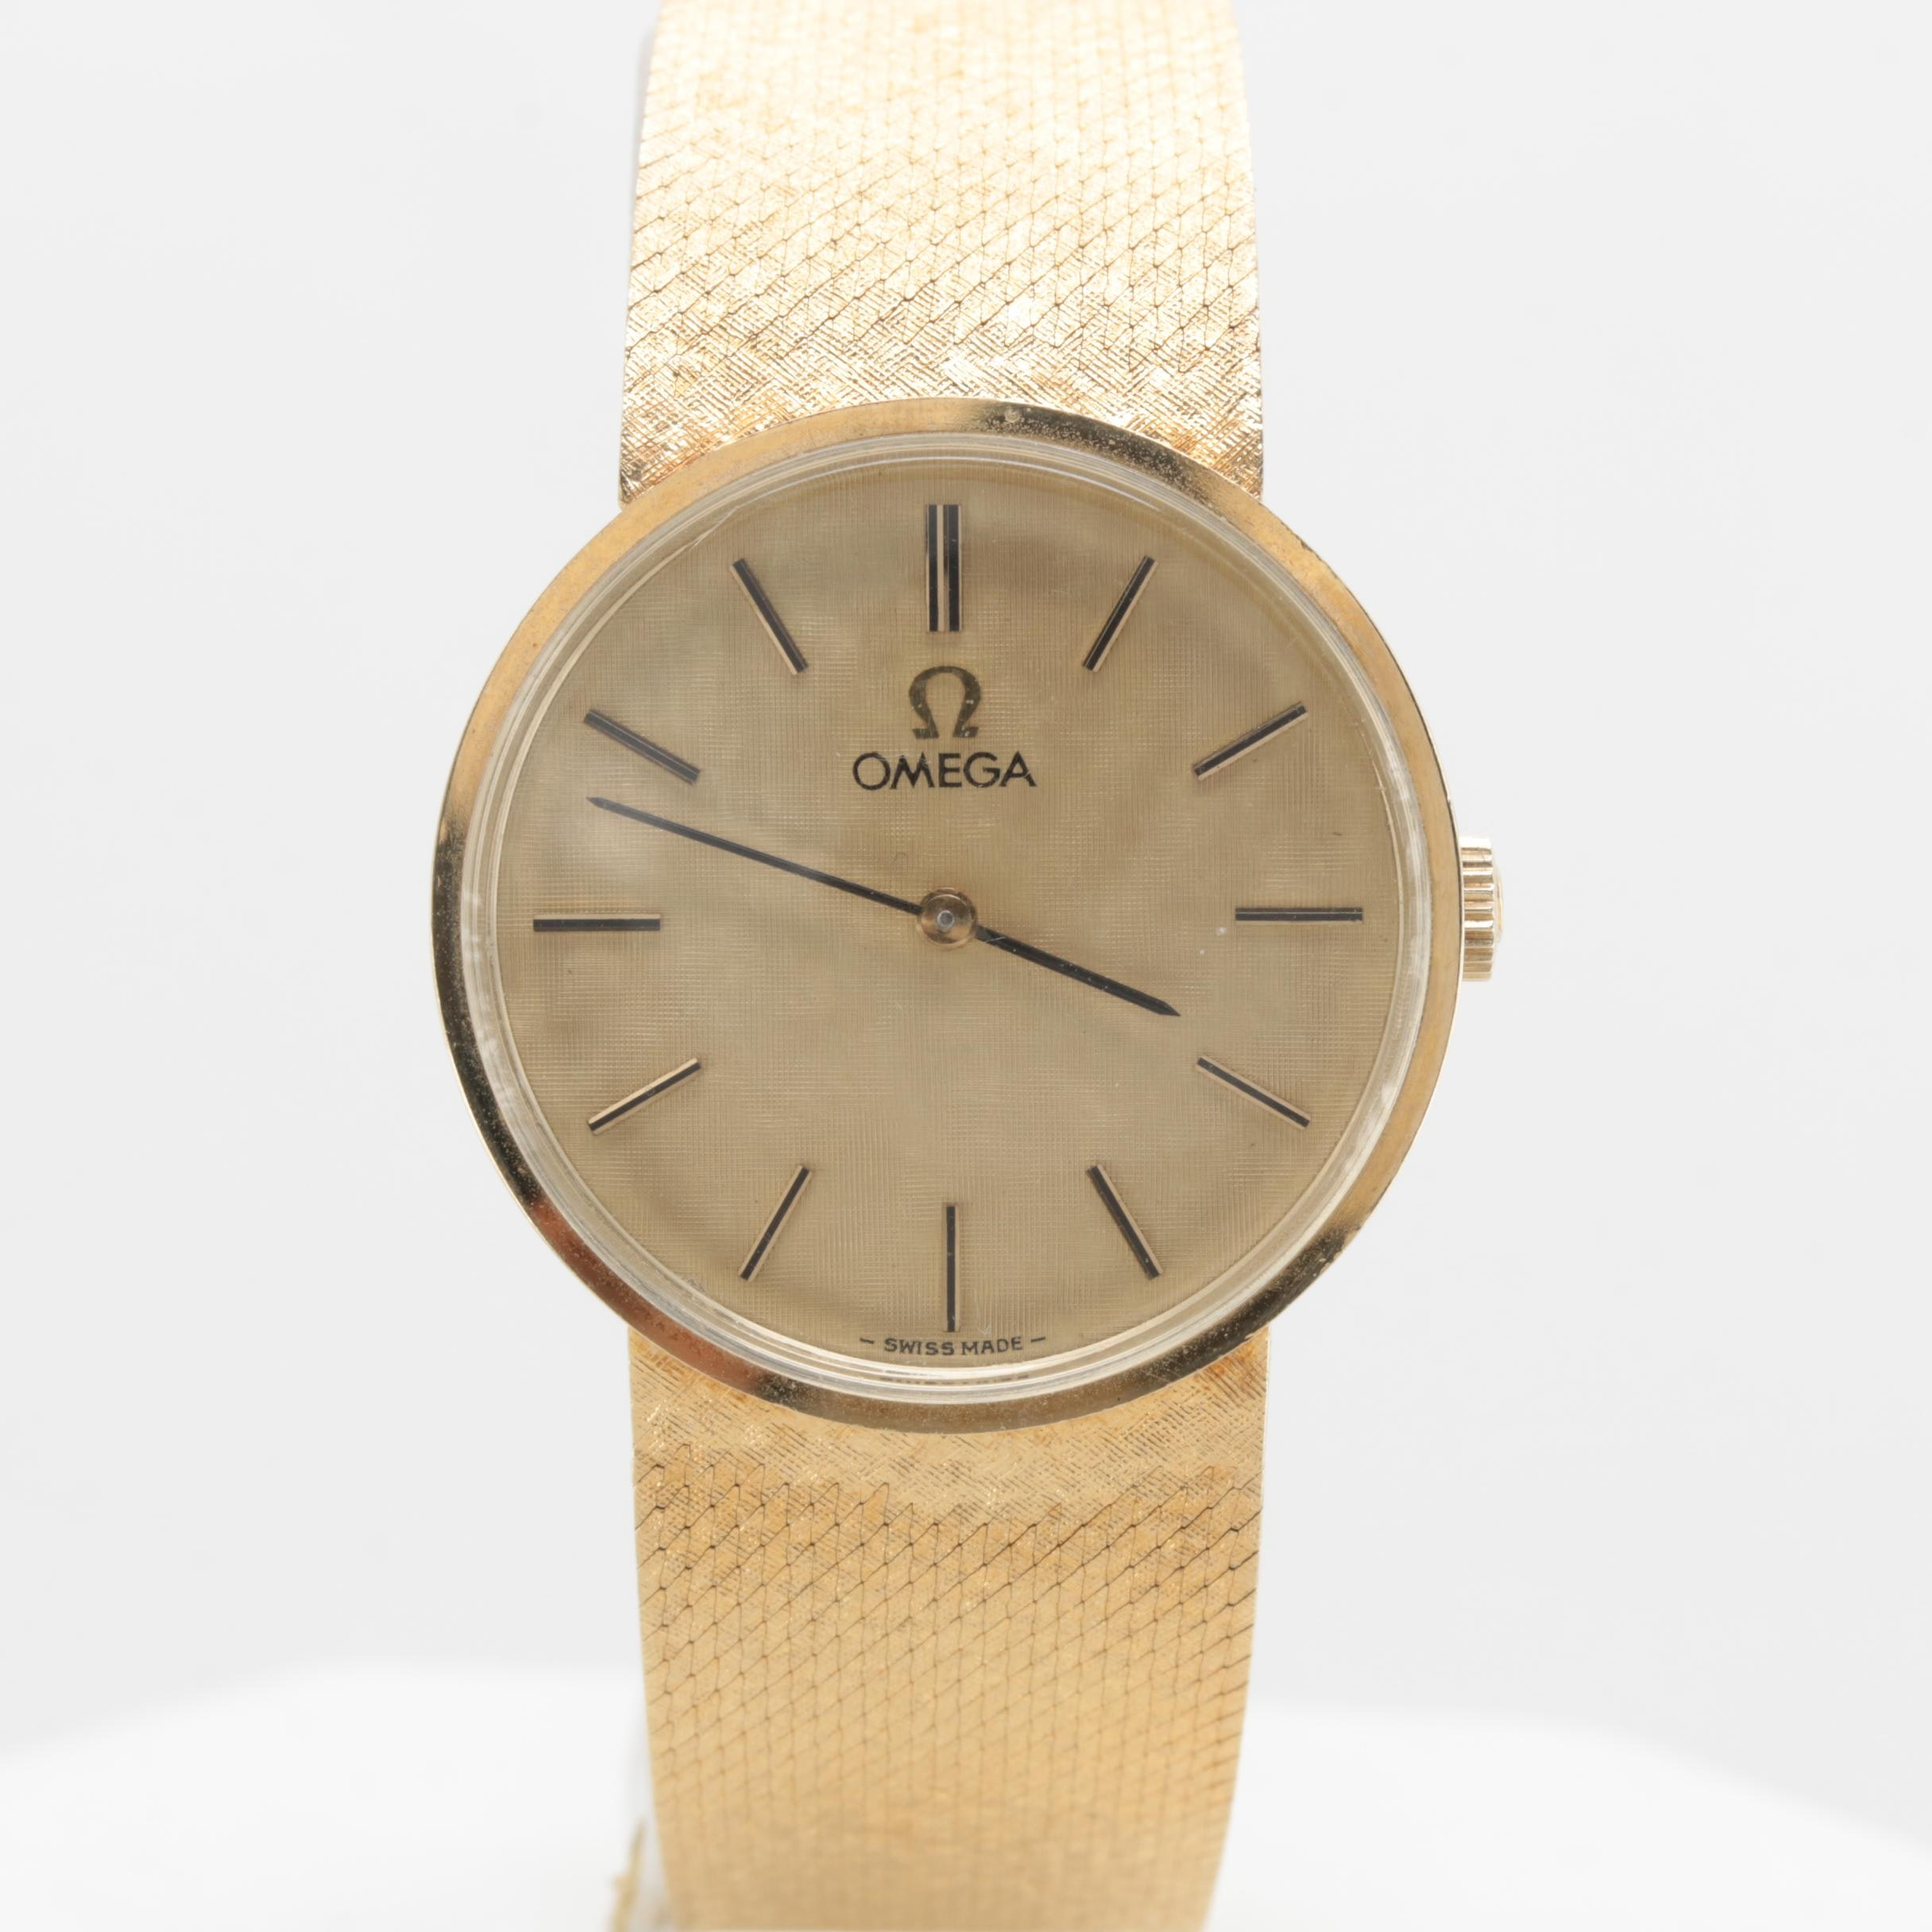 Omega 14K Yellow Gold Manual Winding Wristwatch